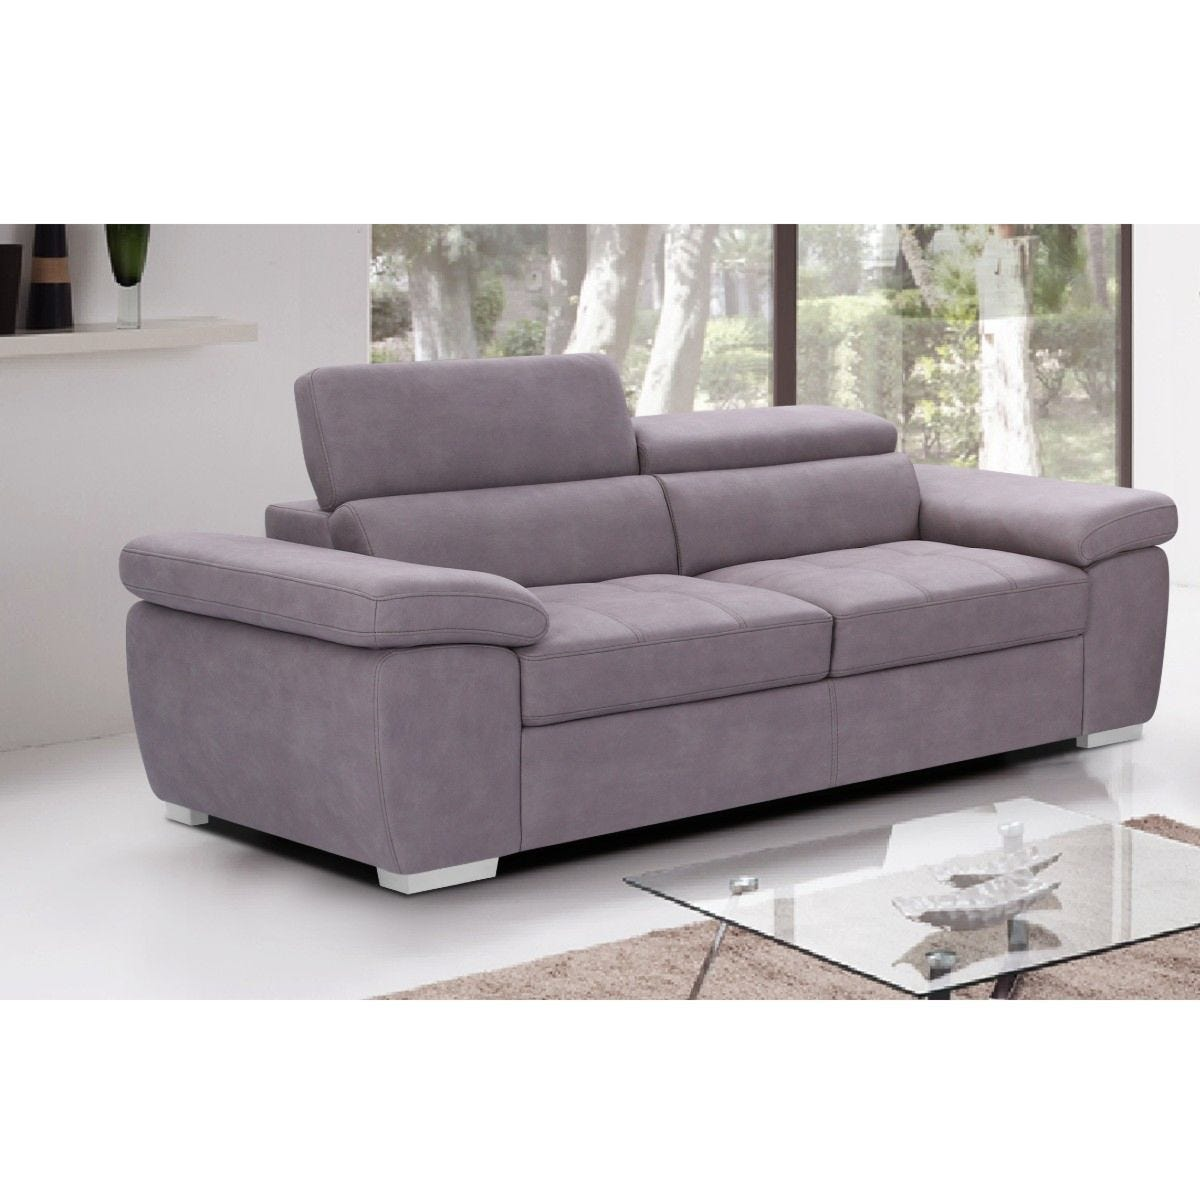 Alton 3 Seater Faux Suede Sofa Mushroom Grey